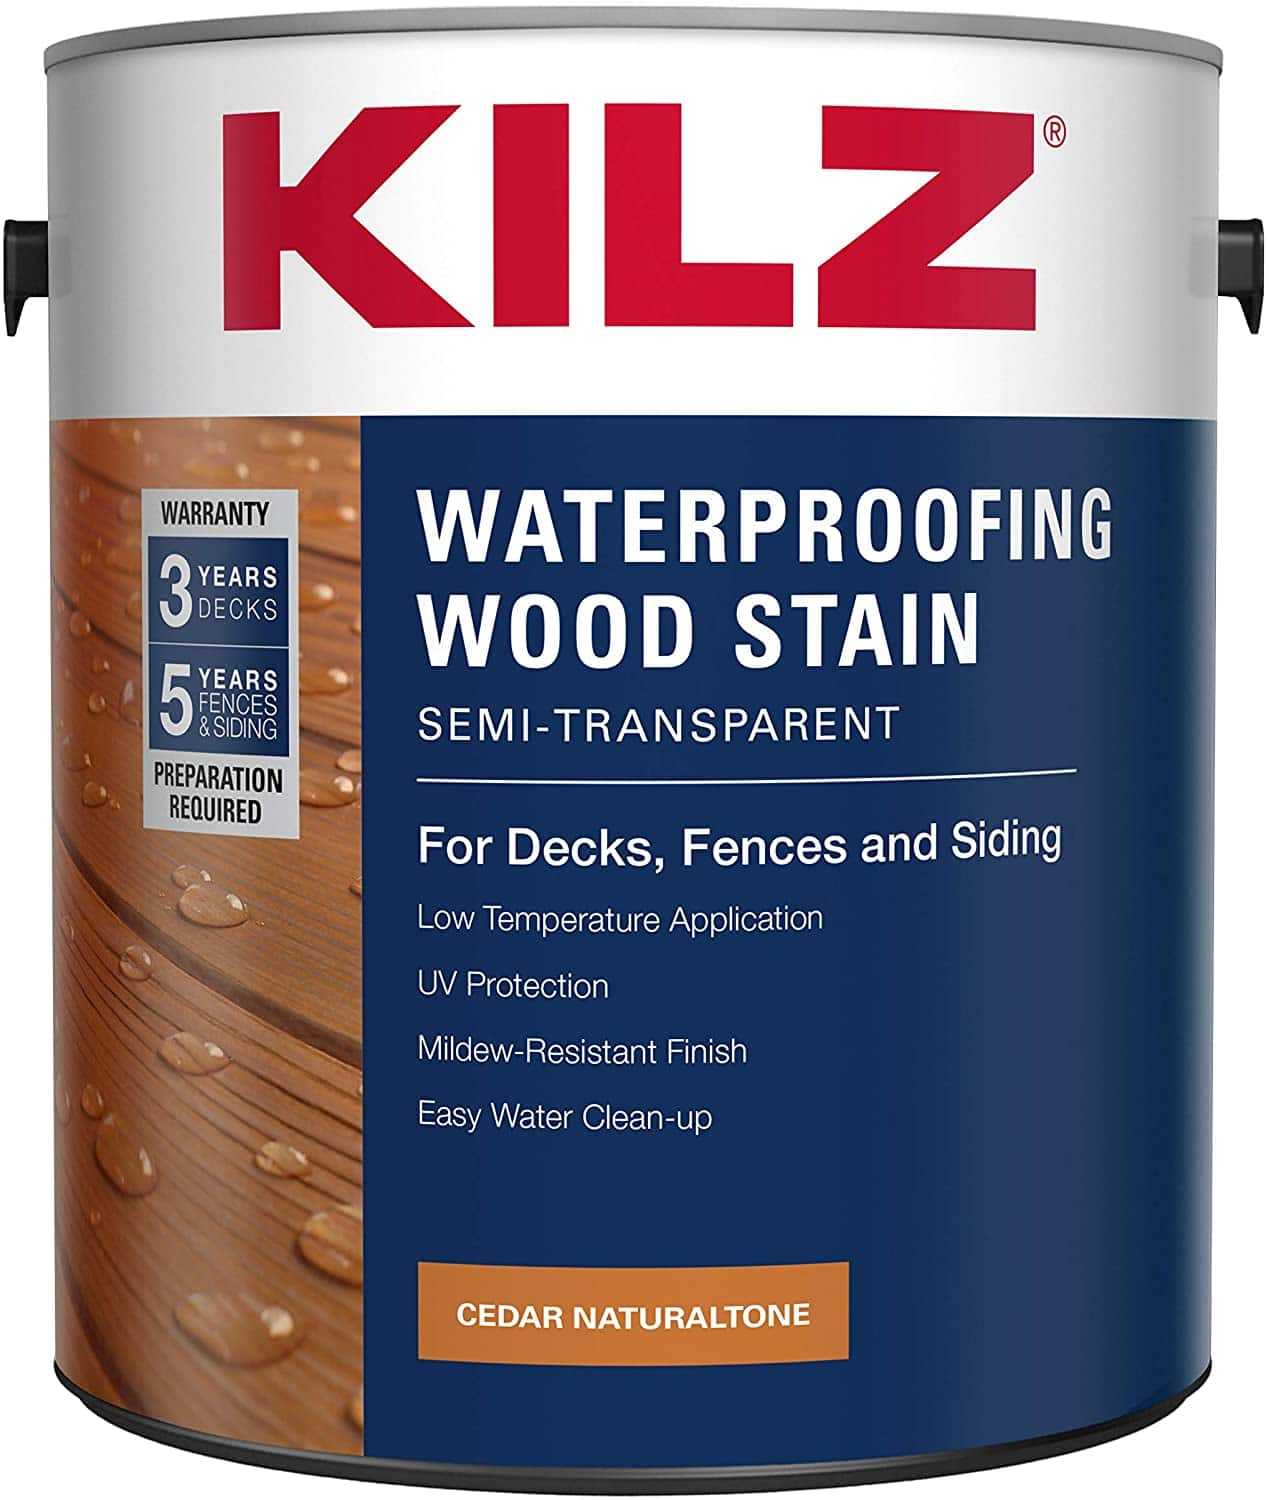 KILZ L832111 Exterior Waterproofing Wood Stain review